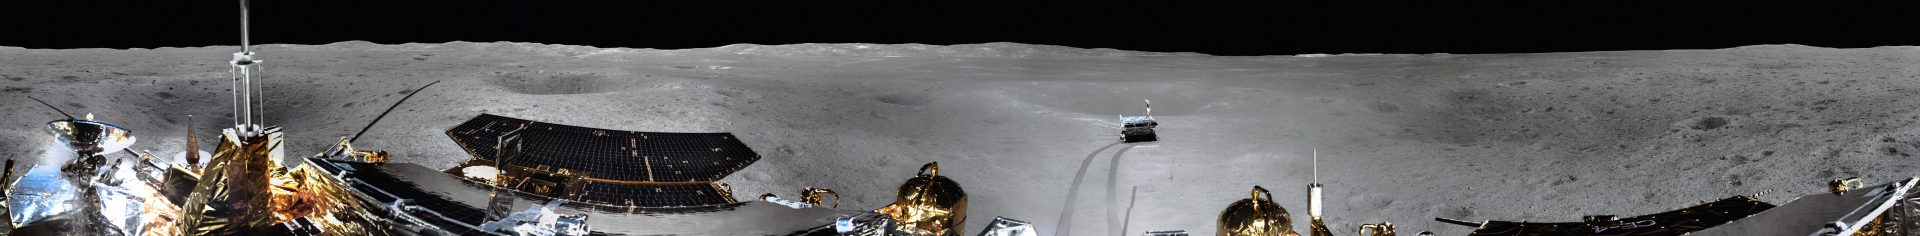 The first panorama from the far side of the Moon. (Image: CNSA via flickr CC BY 4.0)